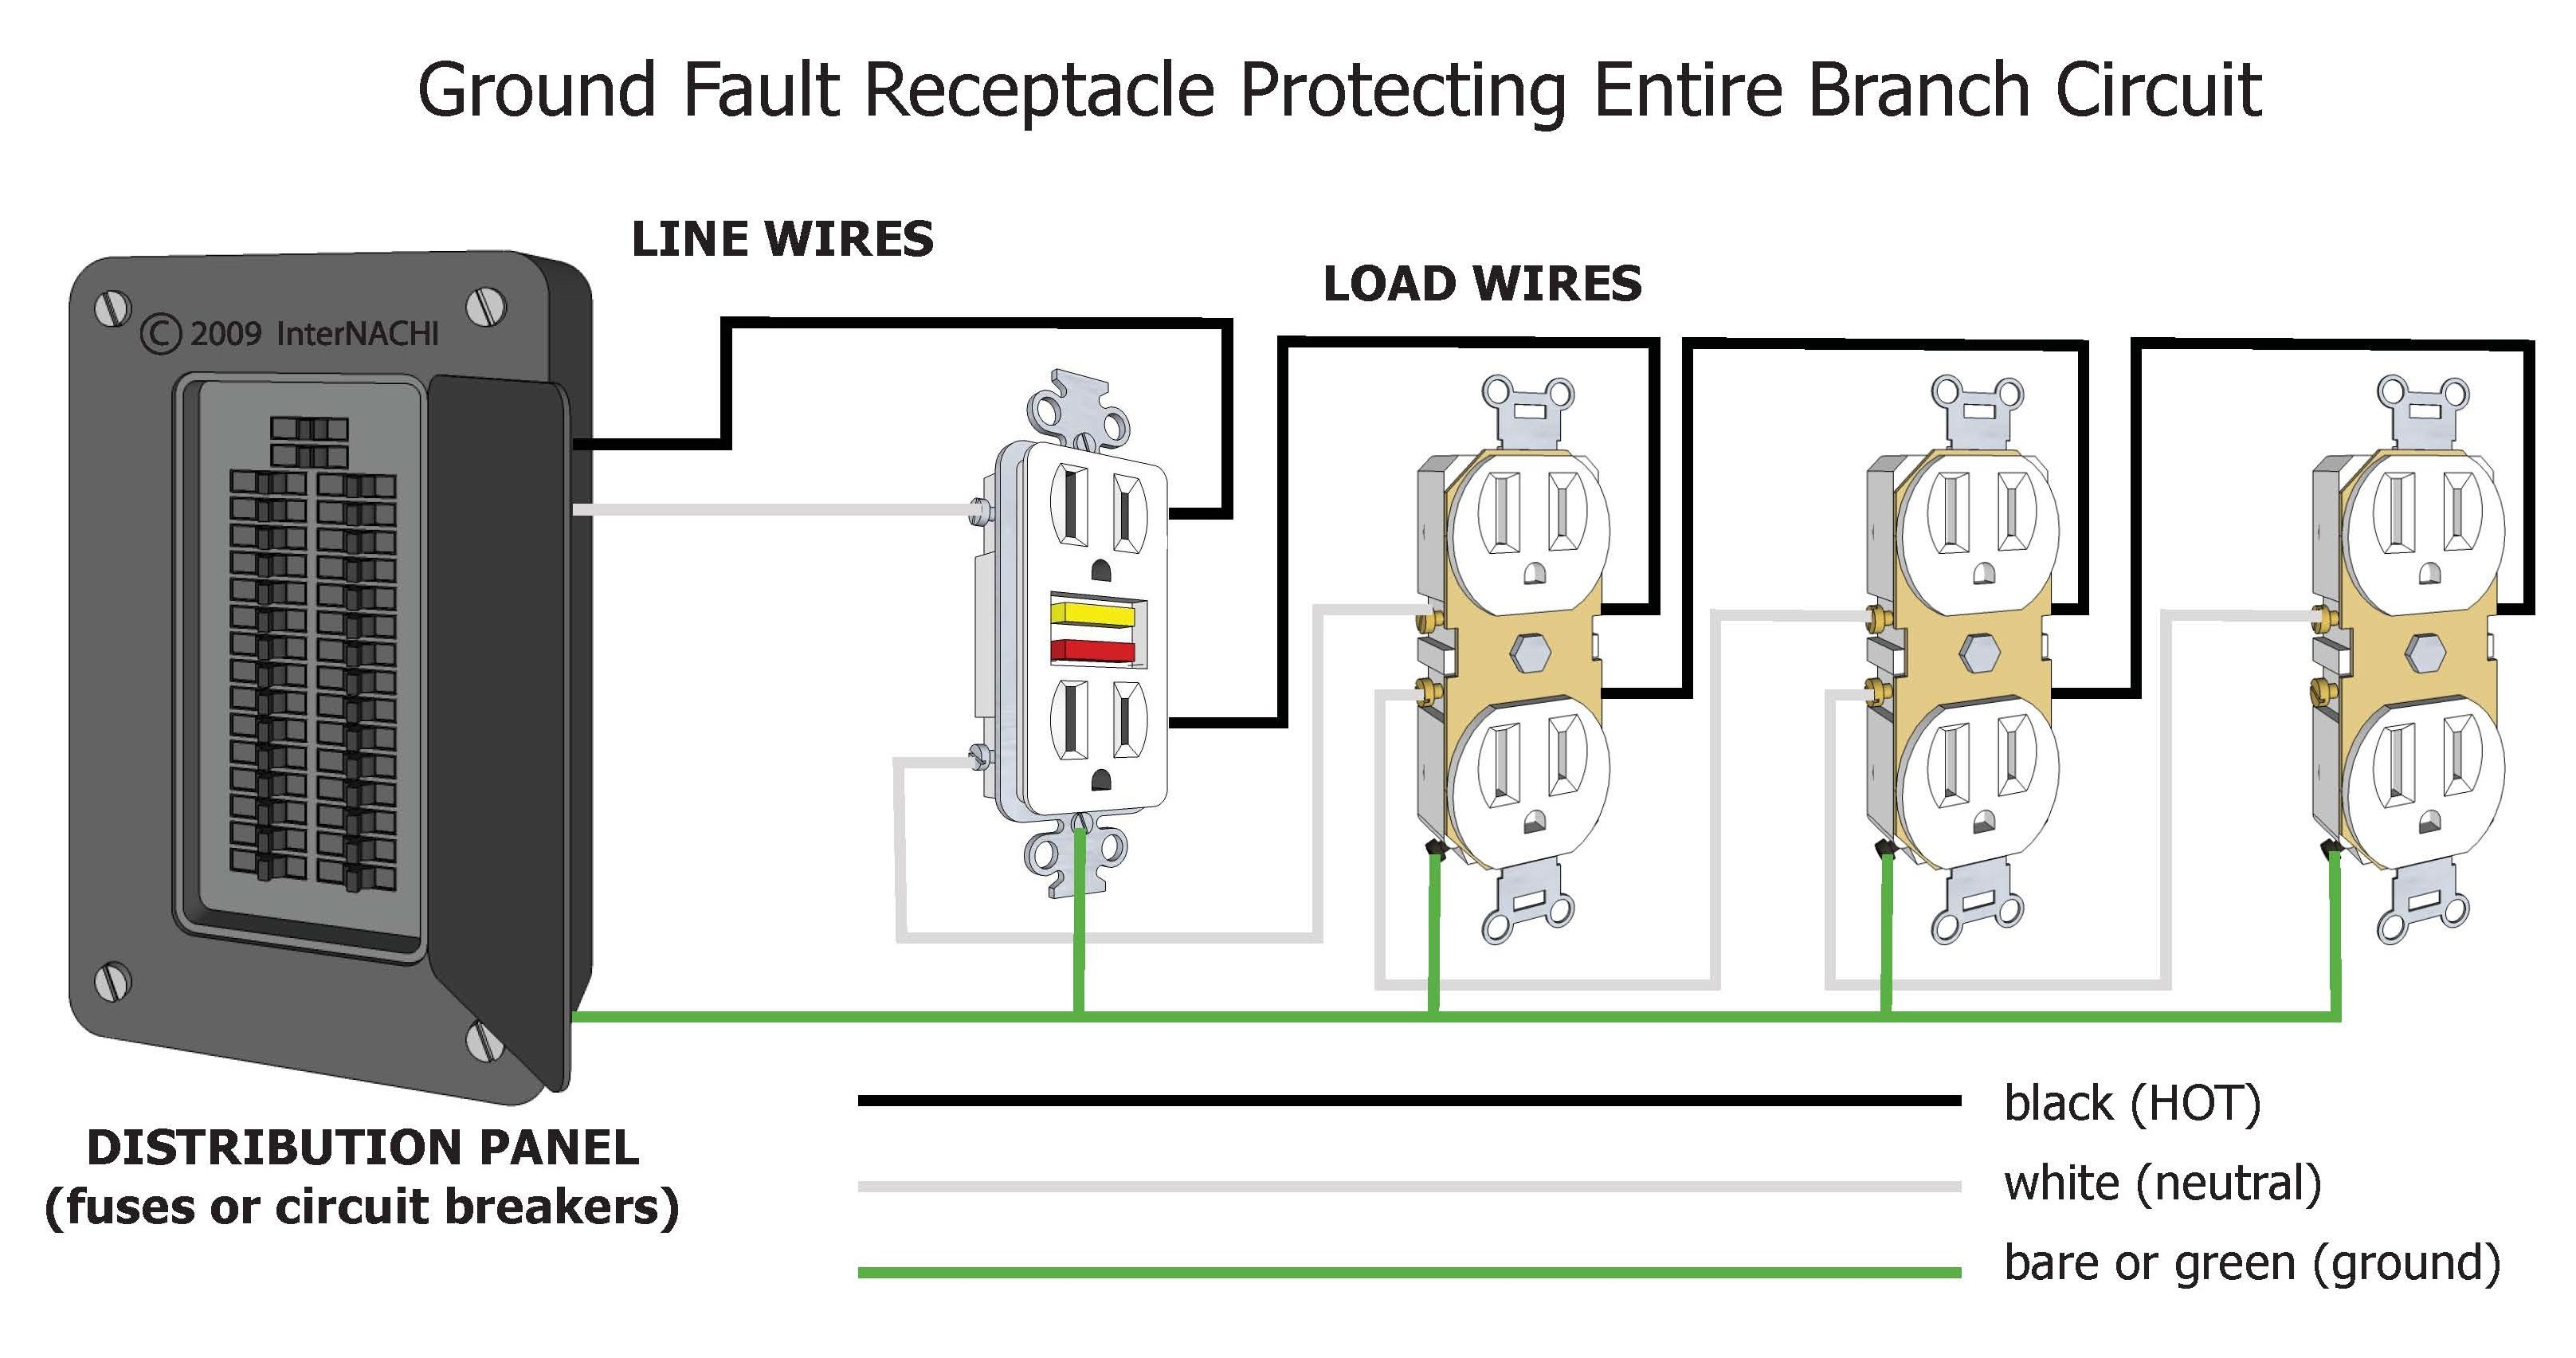 gfci branch circuit color gfci breaker wiring diagram efcaviation com circuit breaker wiring diagram at soozxer.org